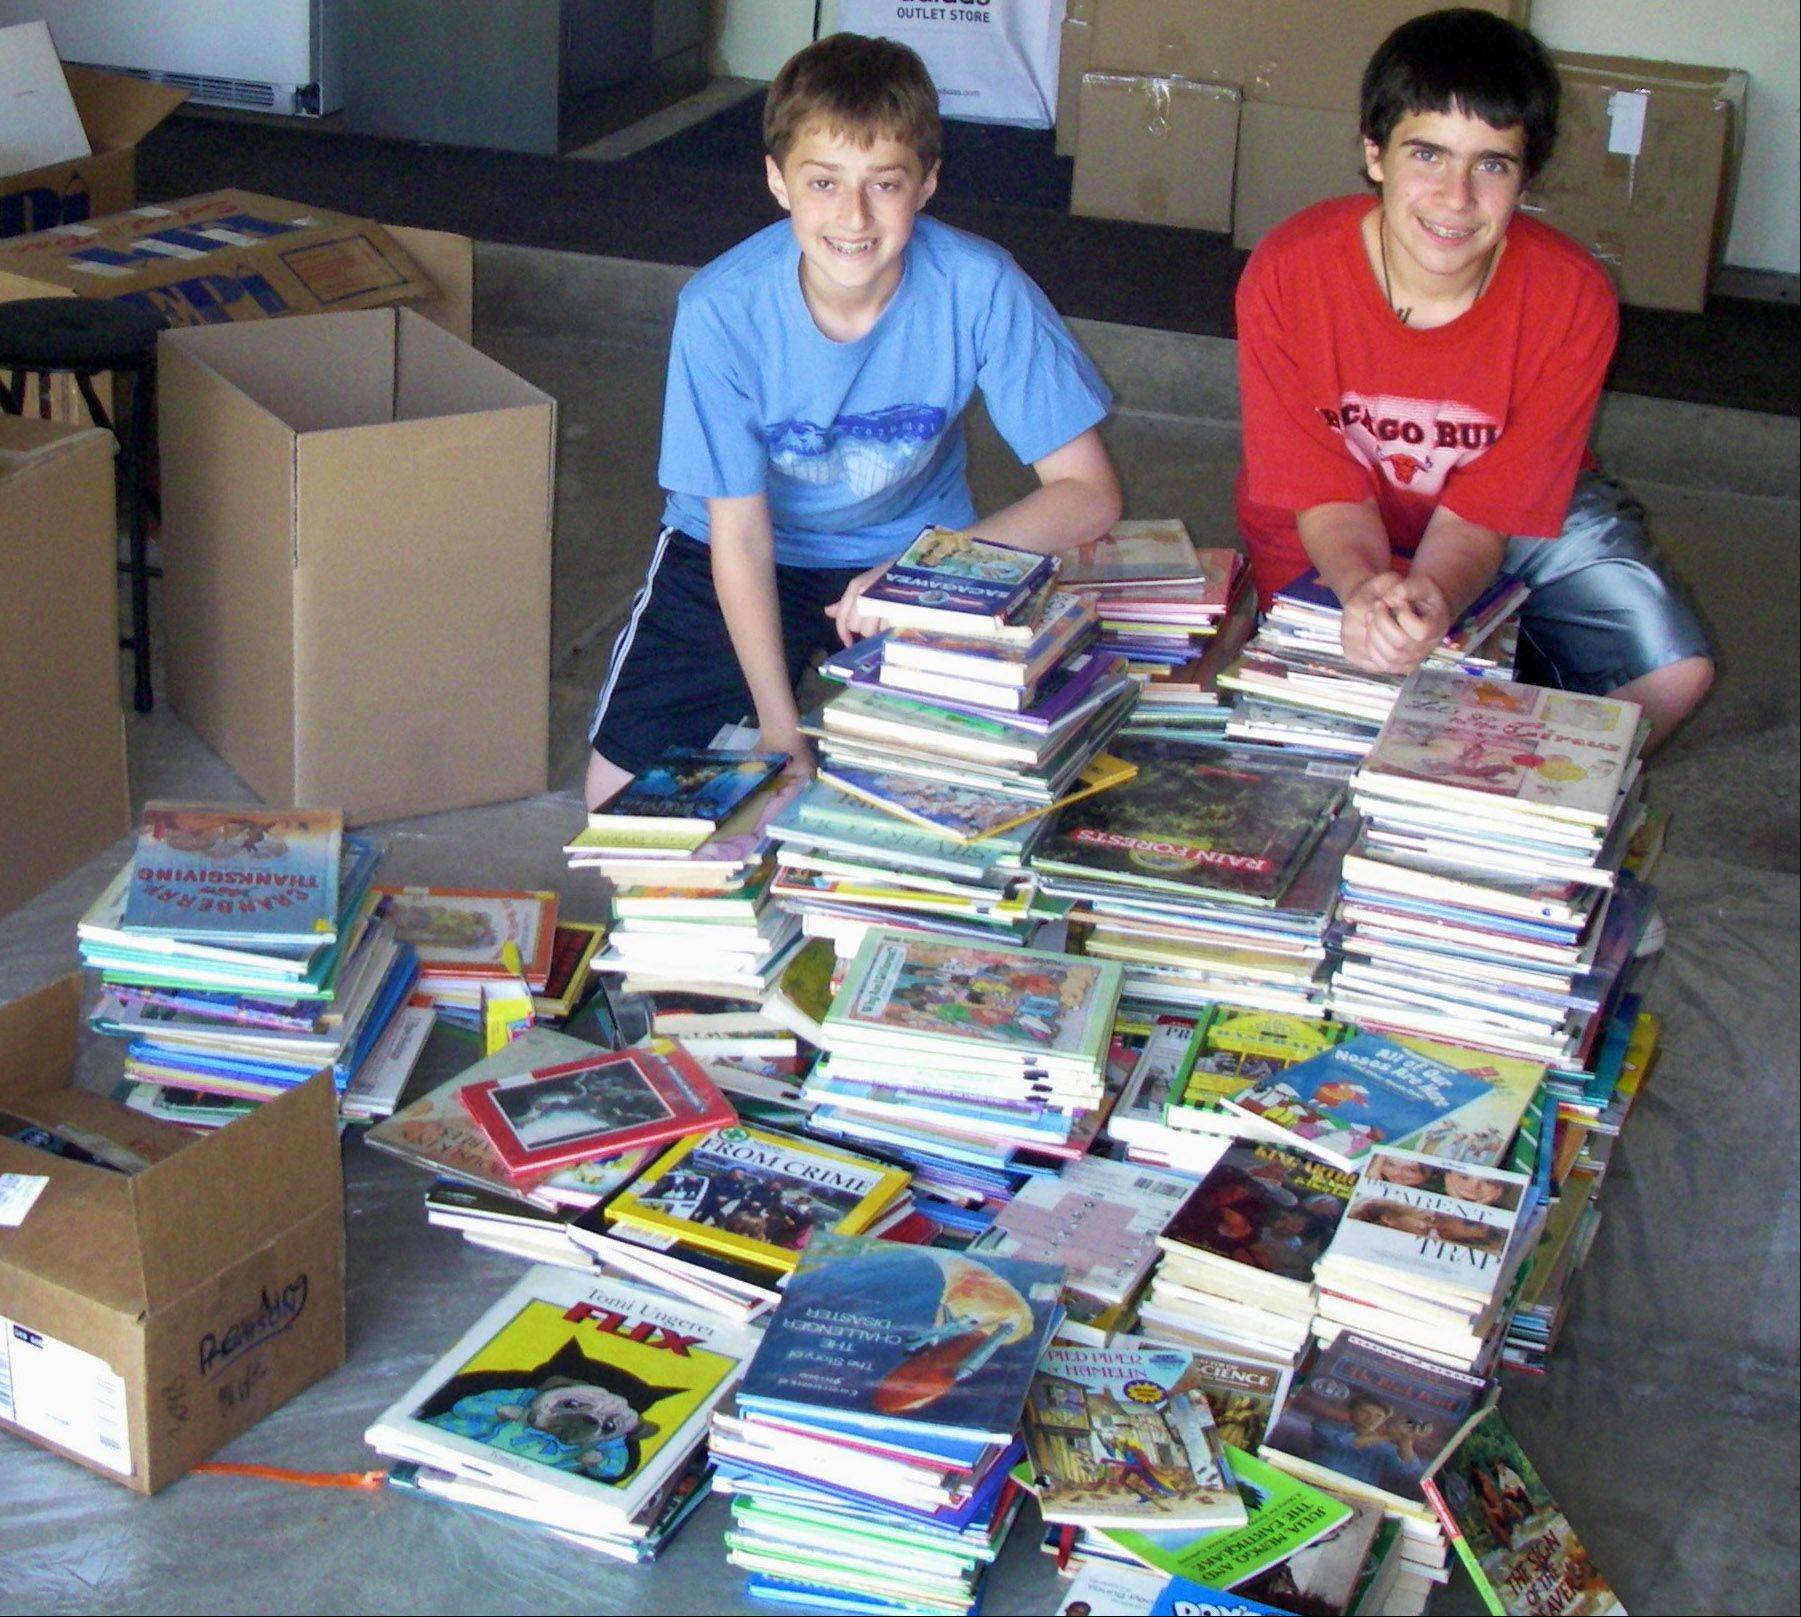 Stephen Cohn, left, and his friend Daniel Mortge with the books and DVDs they received from classmates. In all, they collected more than 1,500 items to be donated.